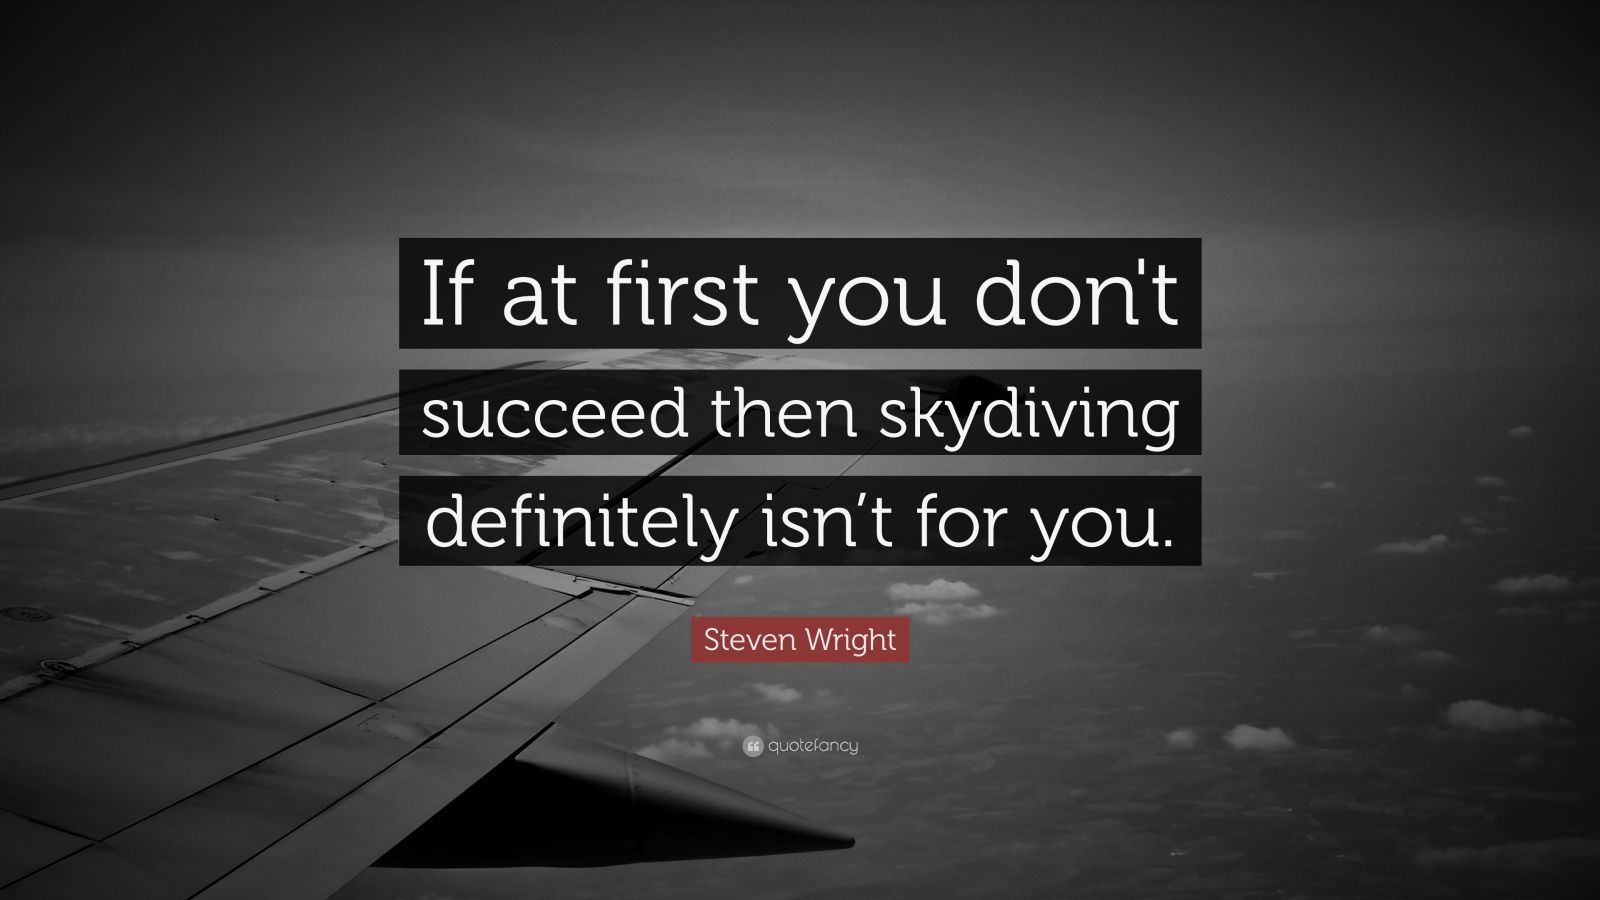 steven wright quote   u201cif at first you don u0026 39 t succeed then